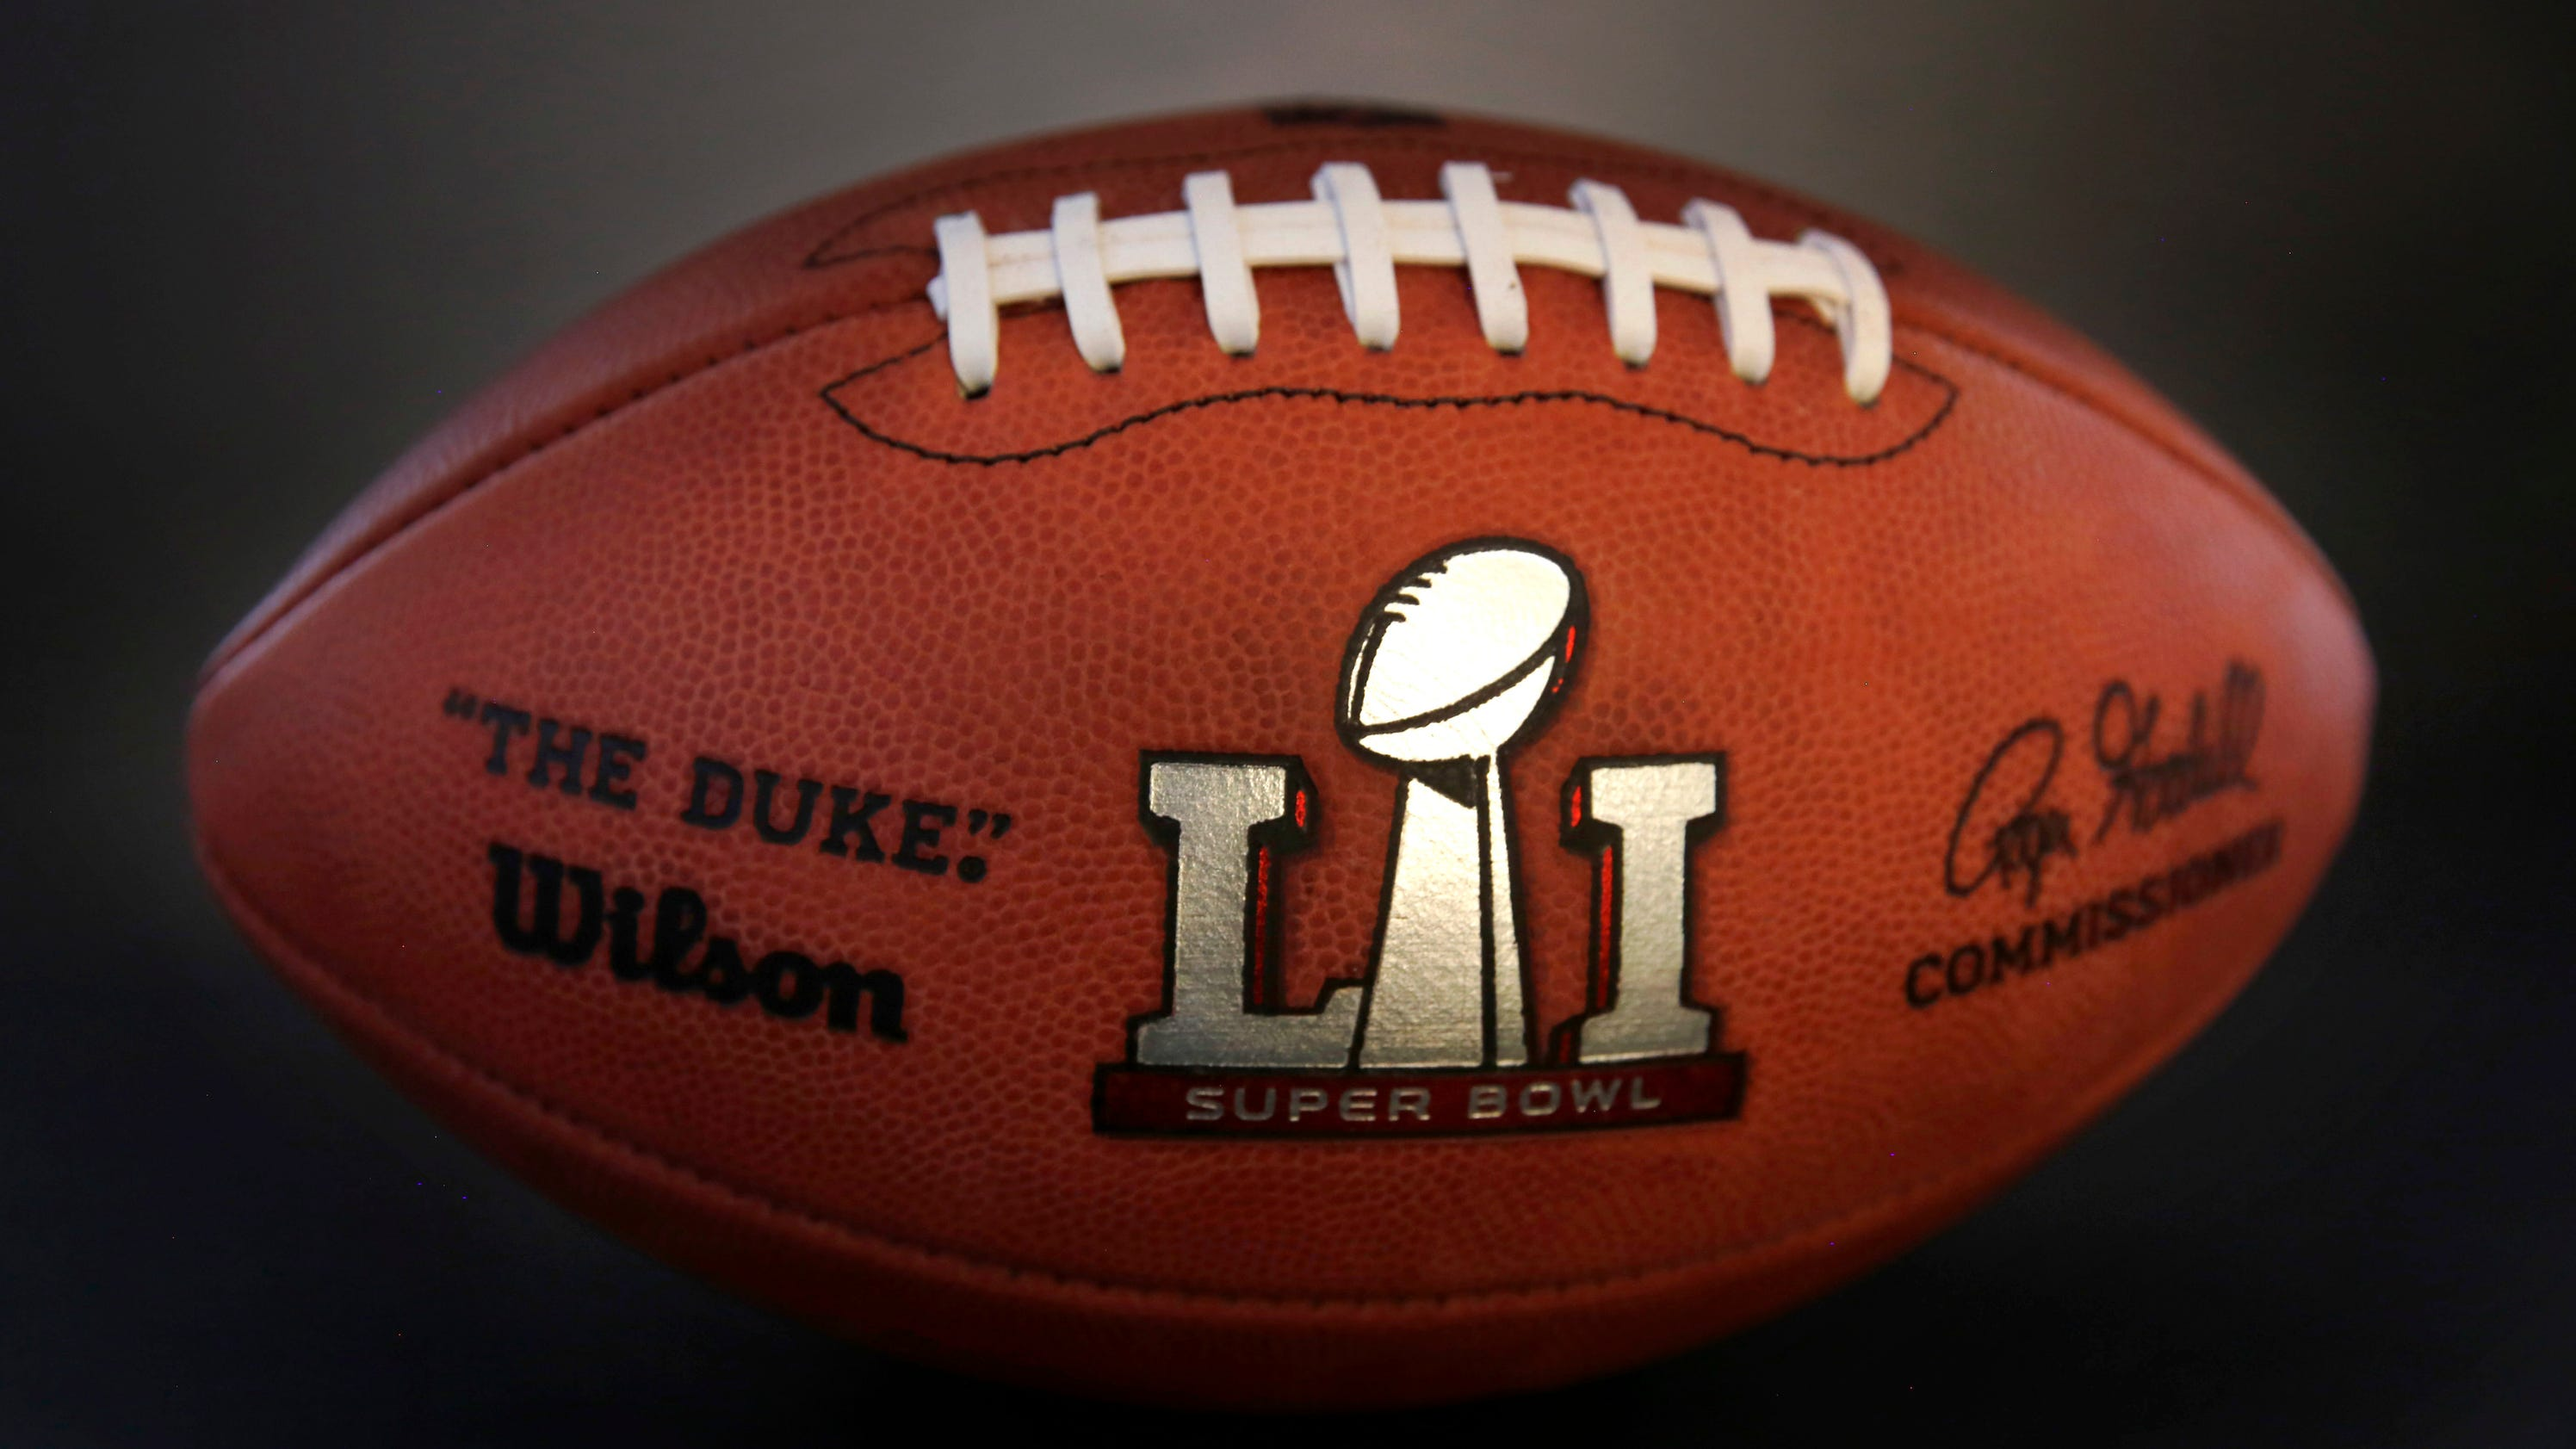 national football league- very serving examine Colts as oppo 558b0c935f3d4aa88e9f4d08c82c6dda